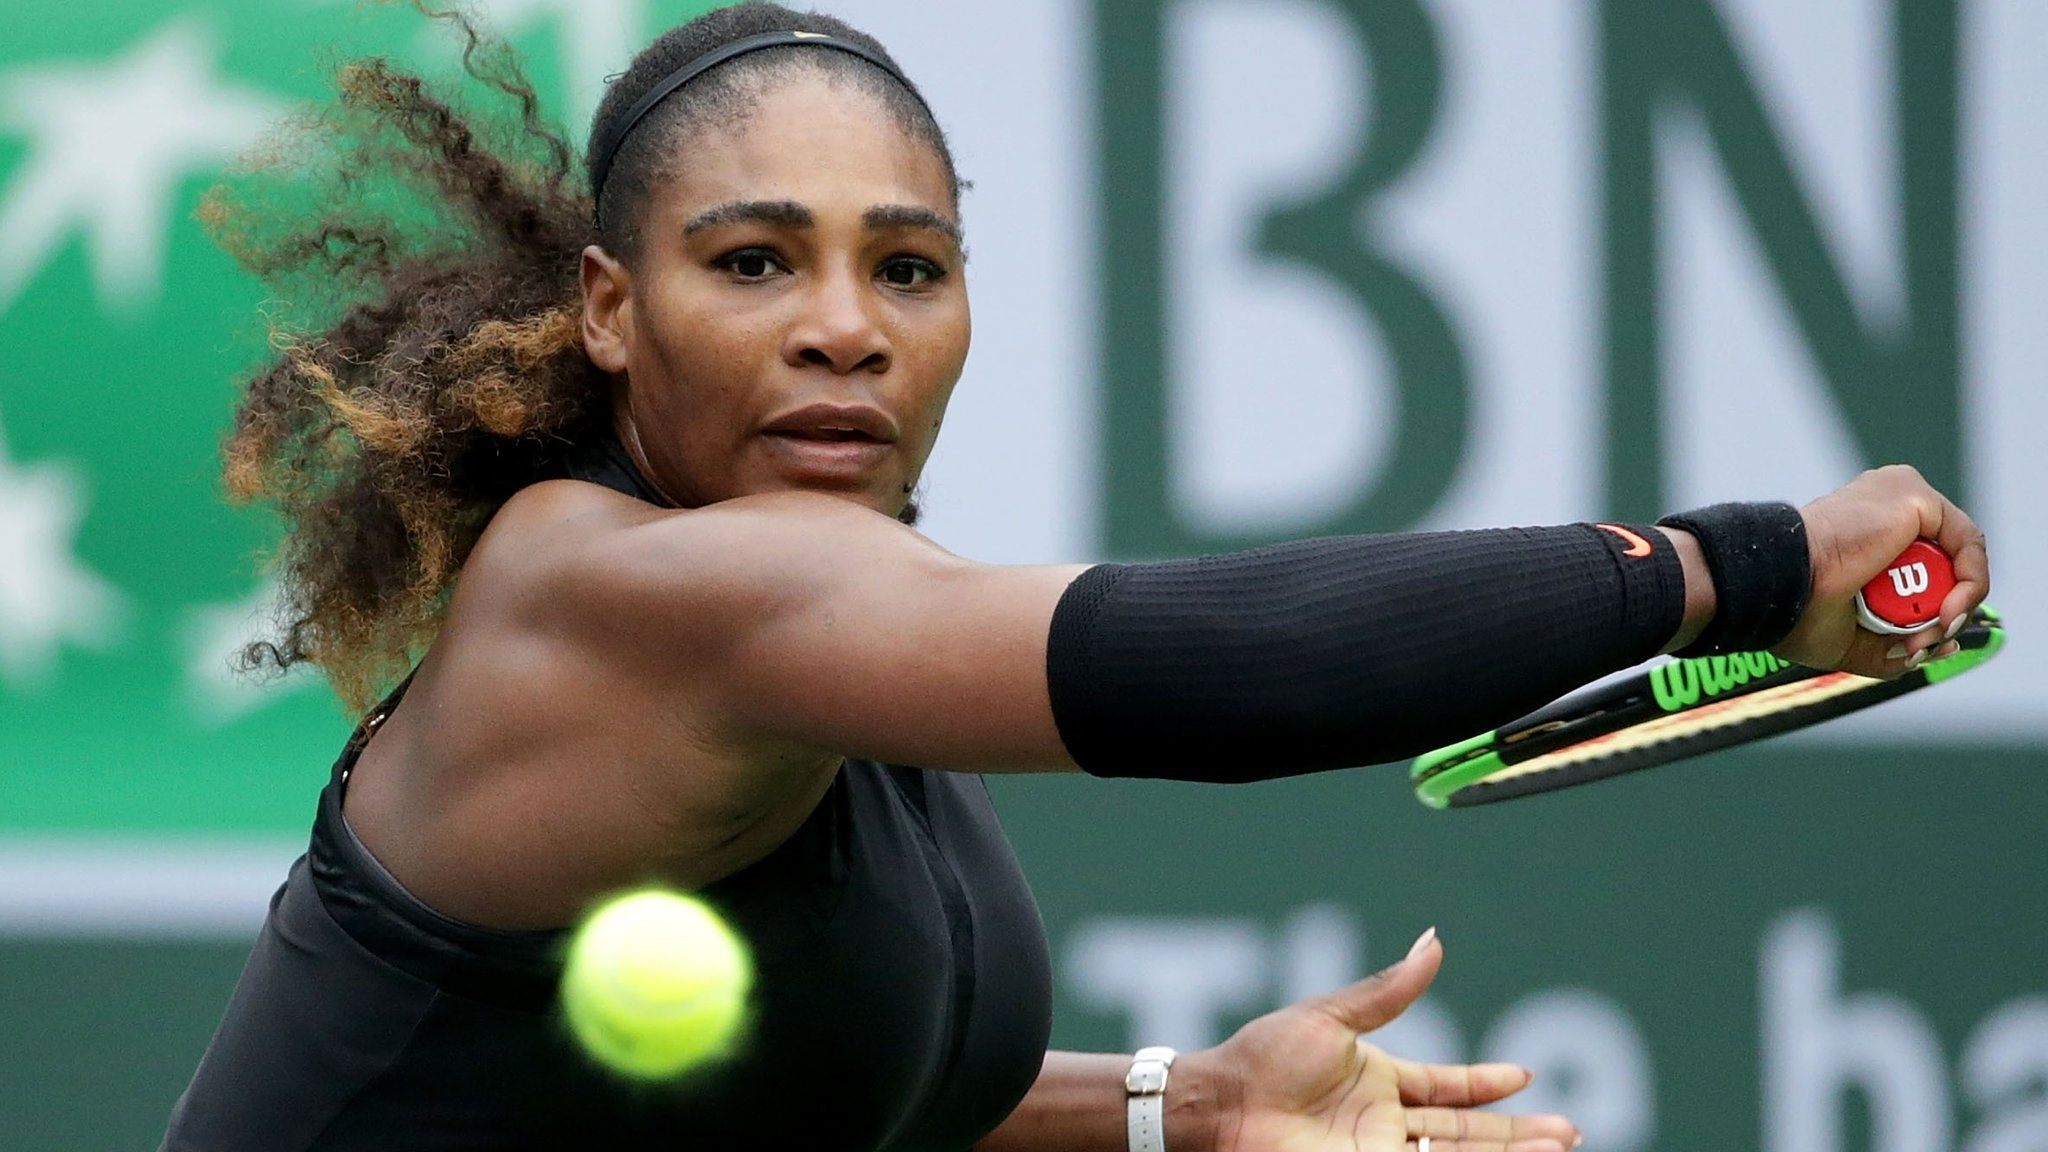 French Open: Serena Williams will not be seeded at Roland Garros